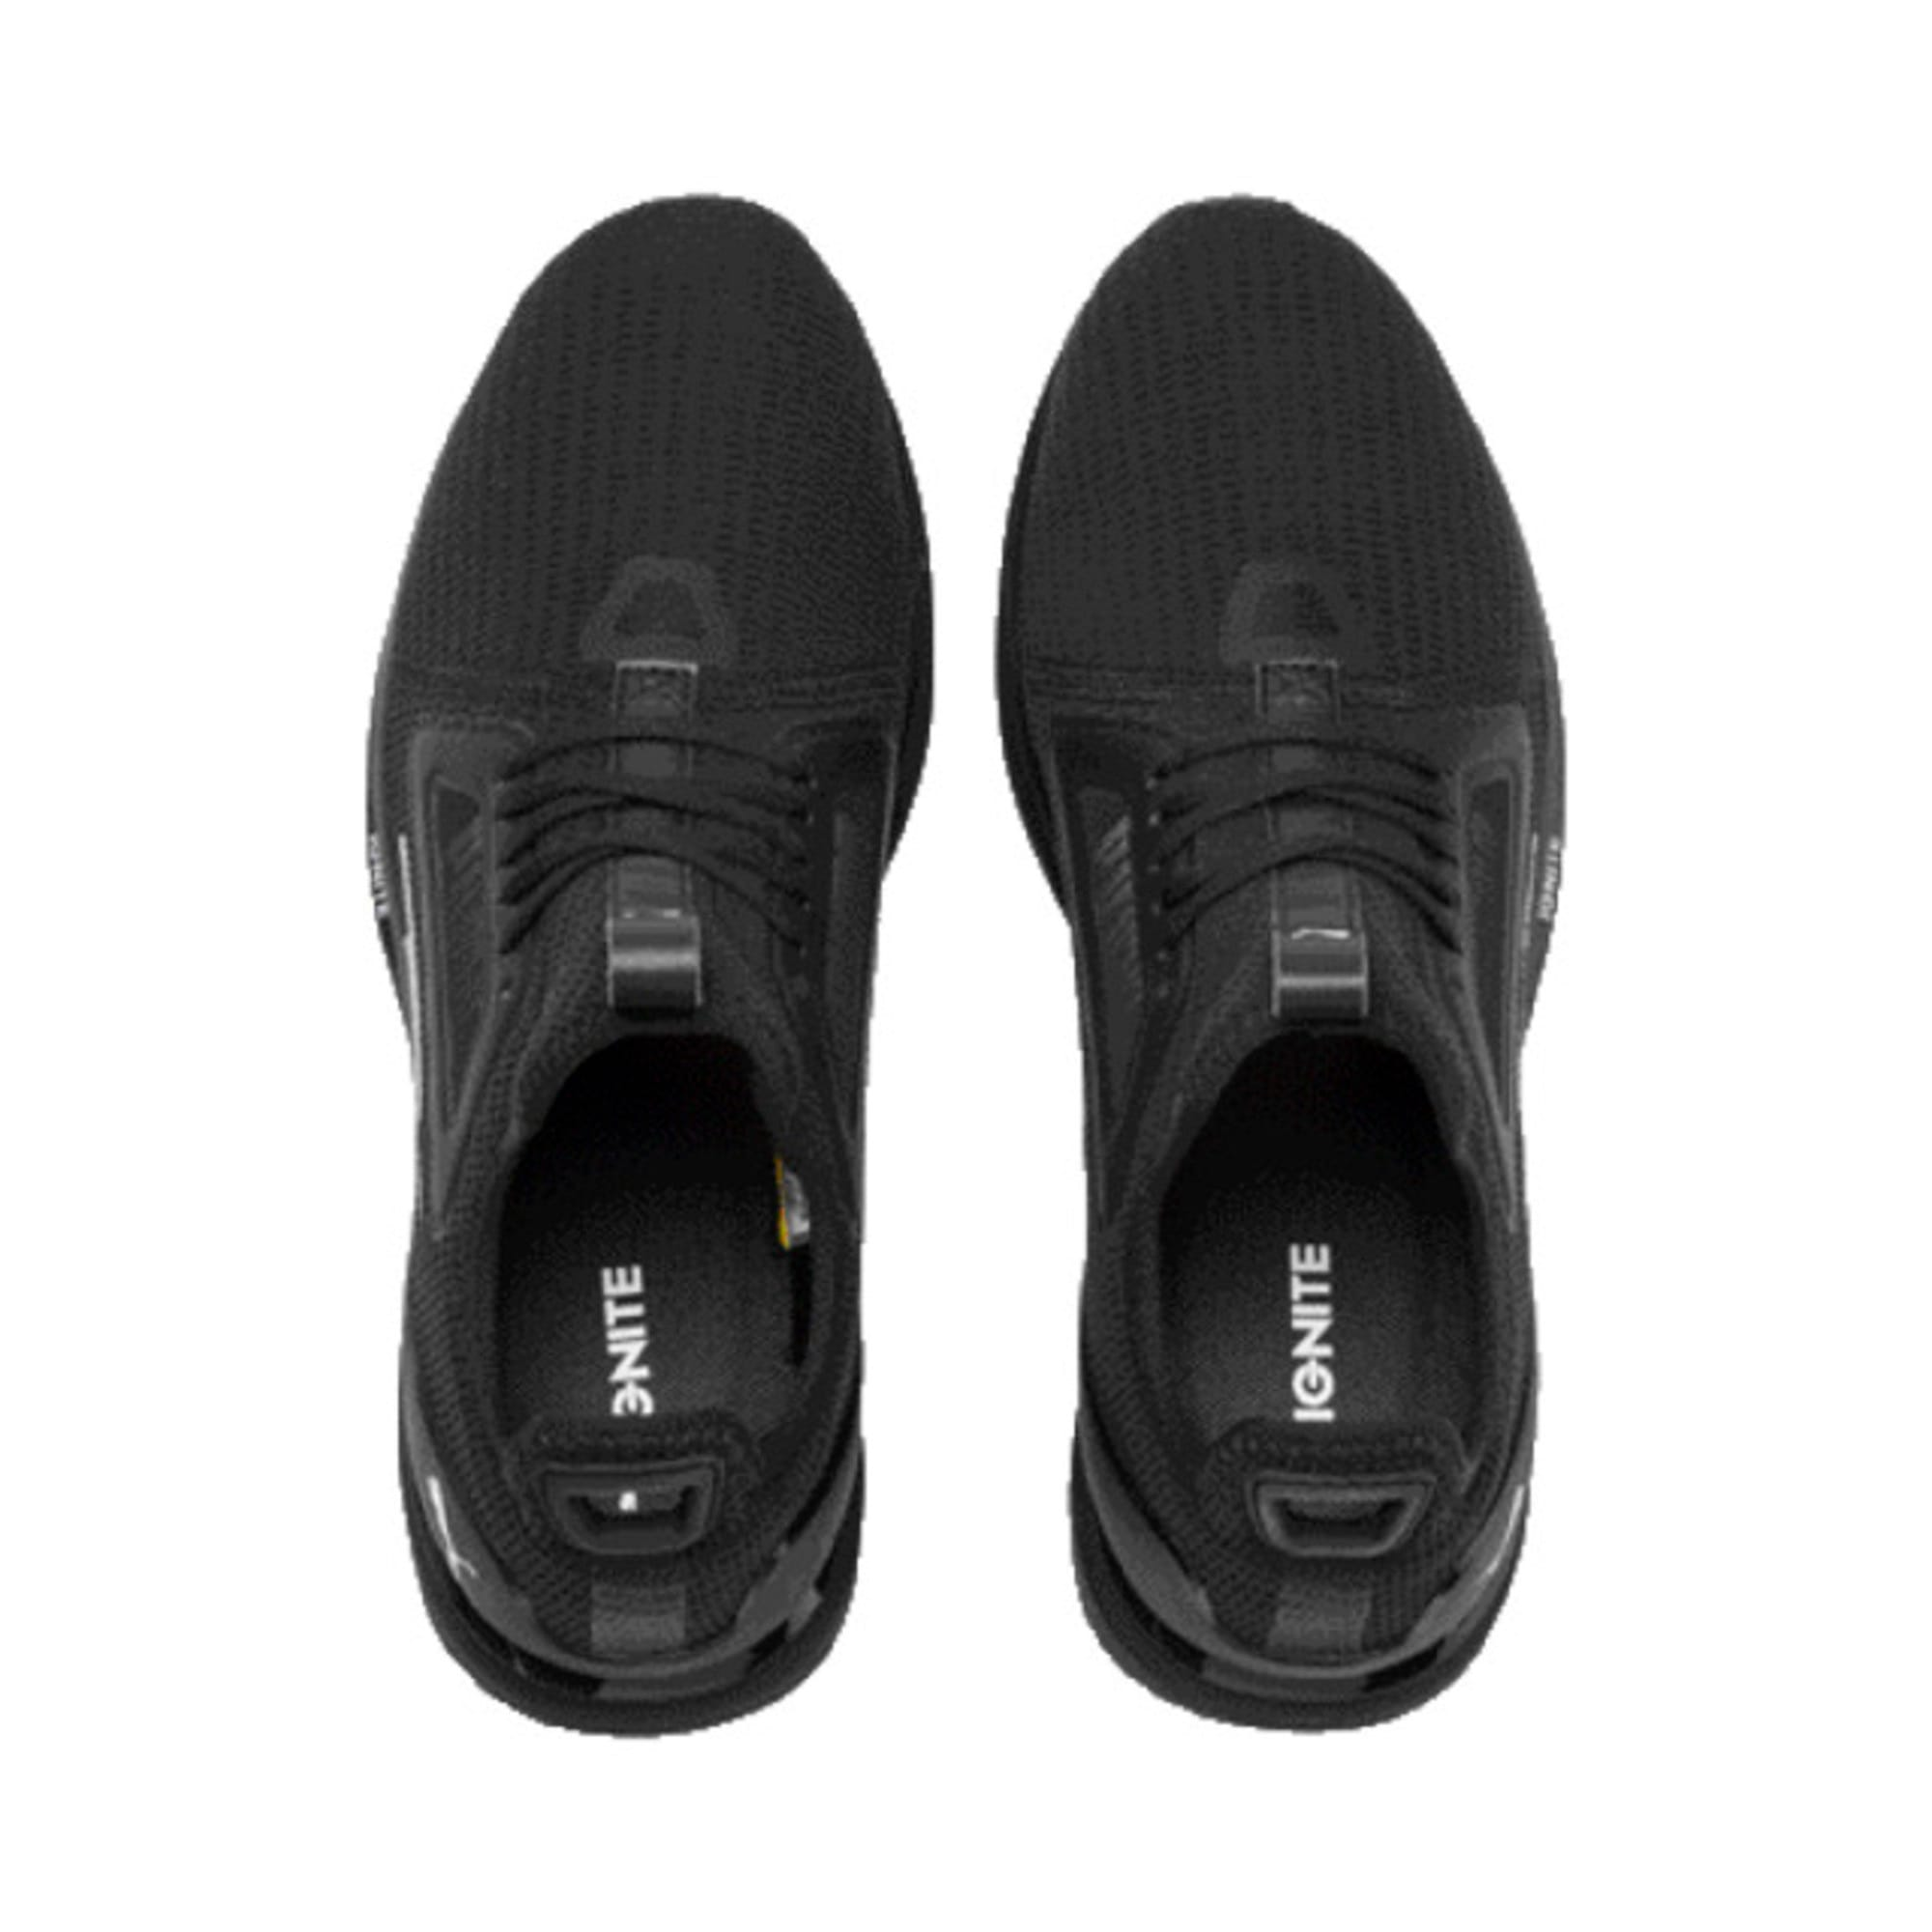 IGNITE Limitless Lean Running Shoes, Puma Black-Puma White, large-IND